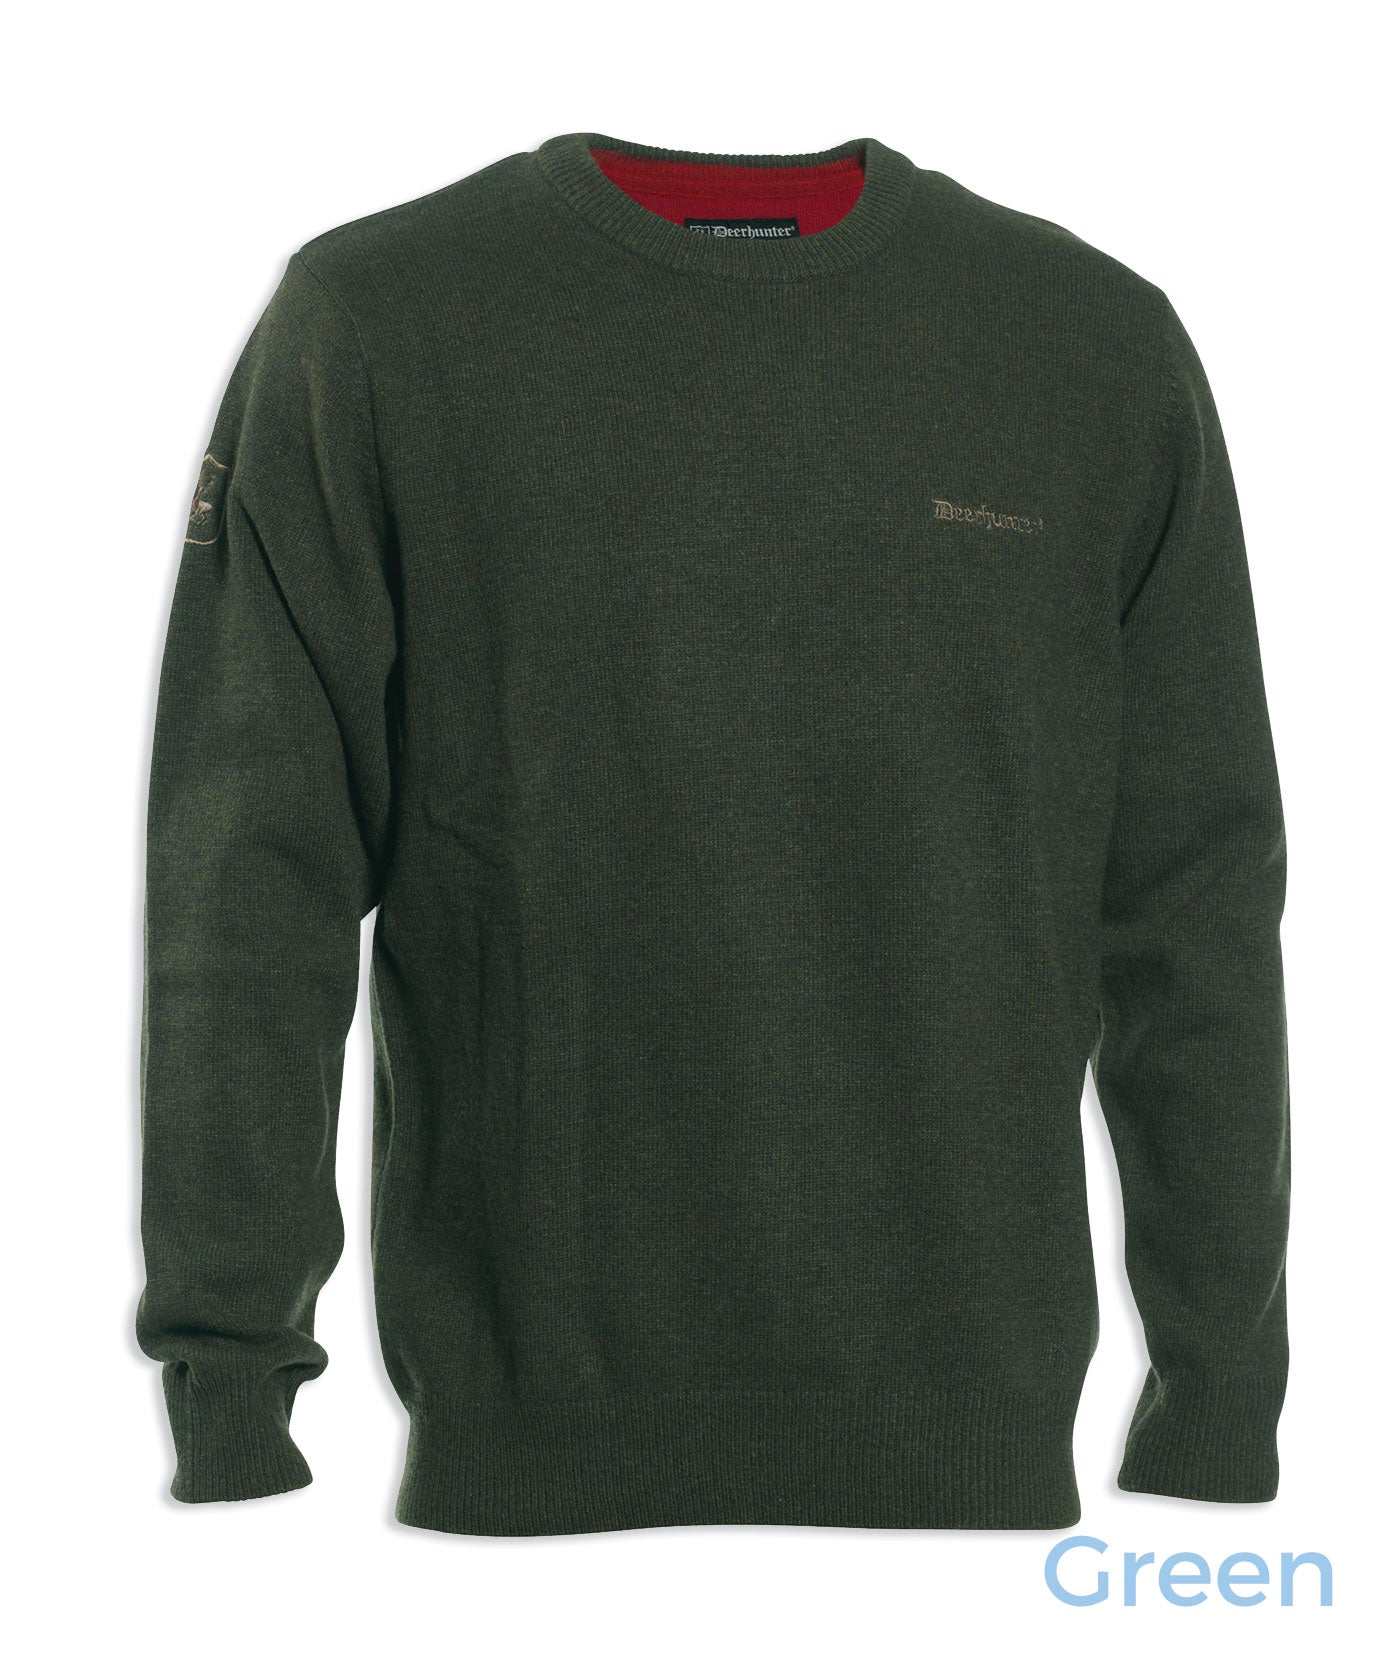 green Deerhunter Hastings Knit O-neck Sweater